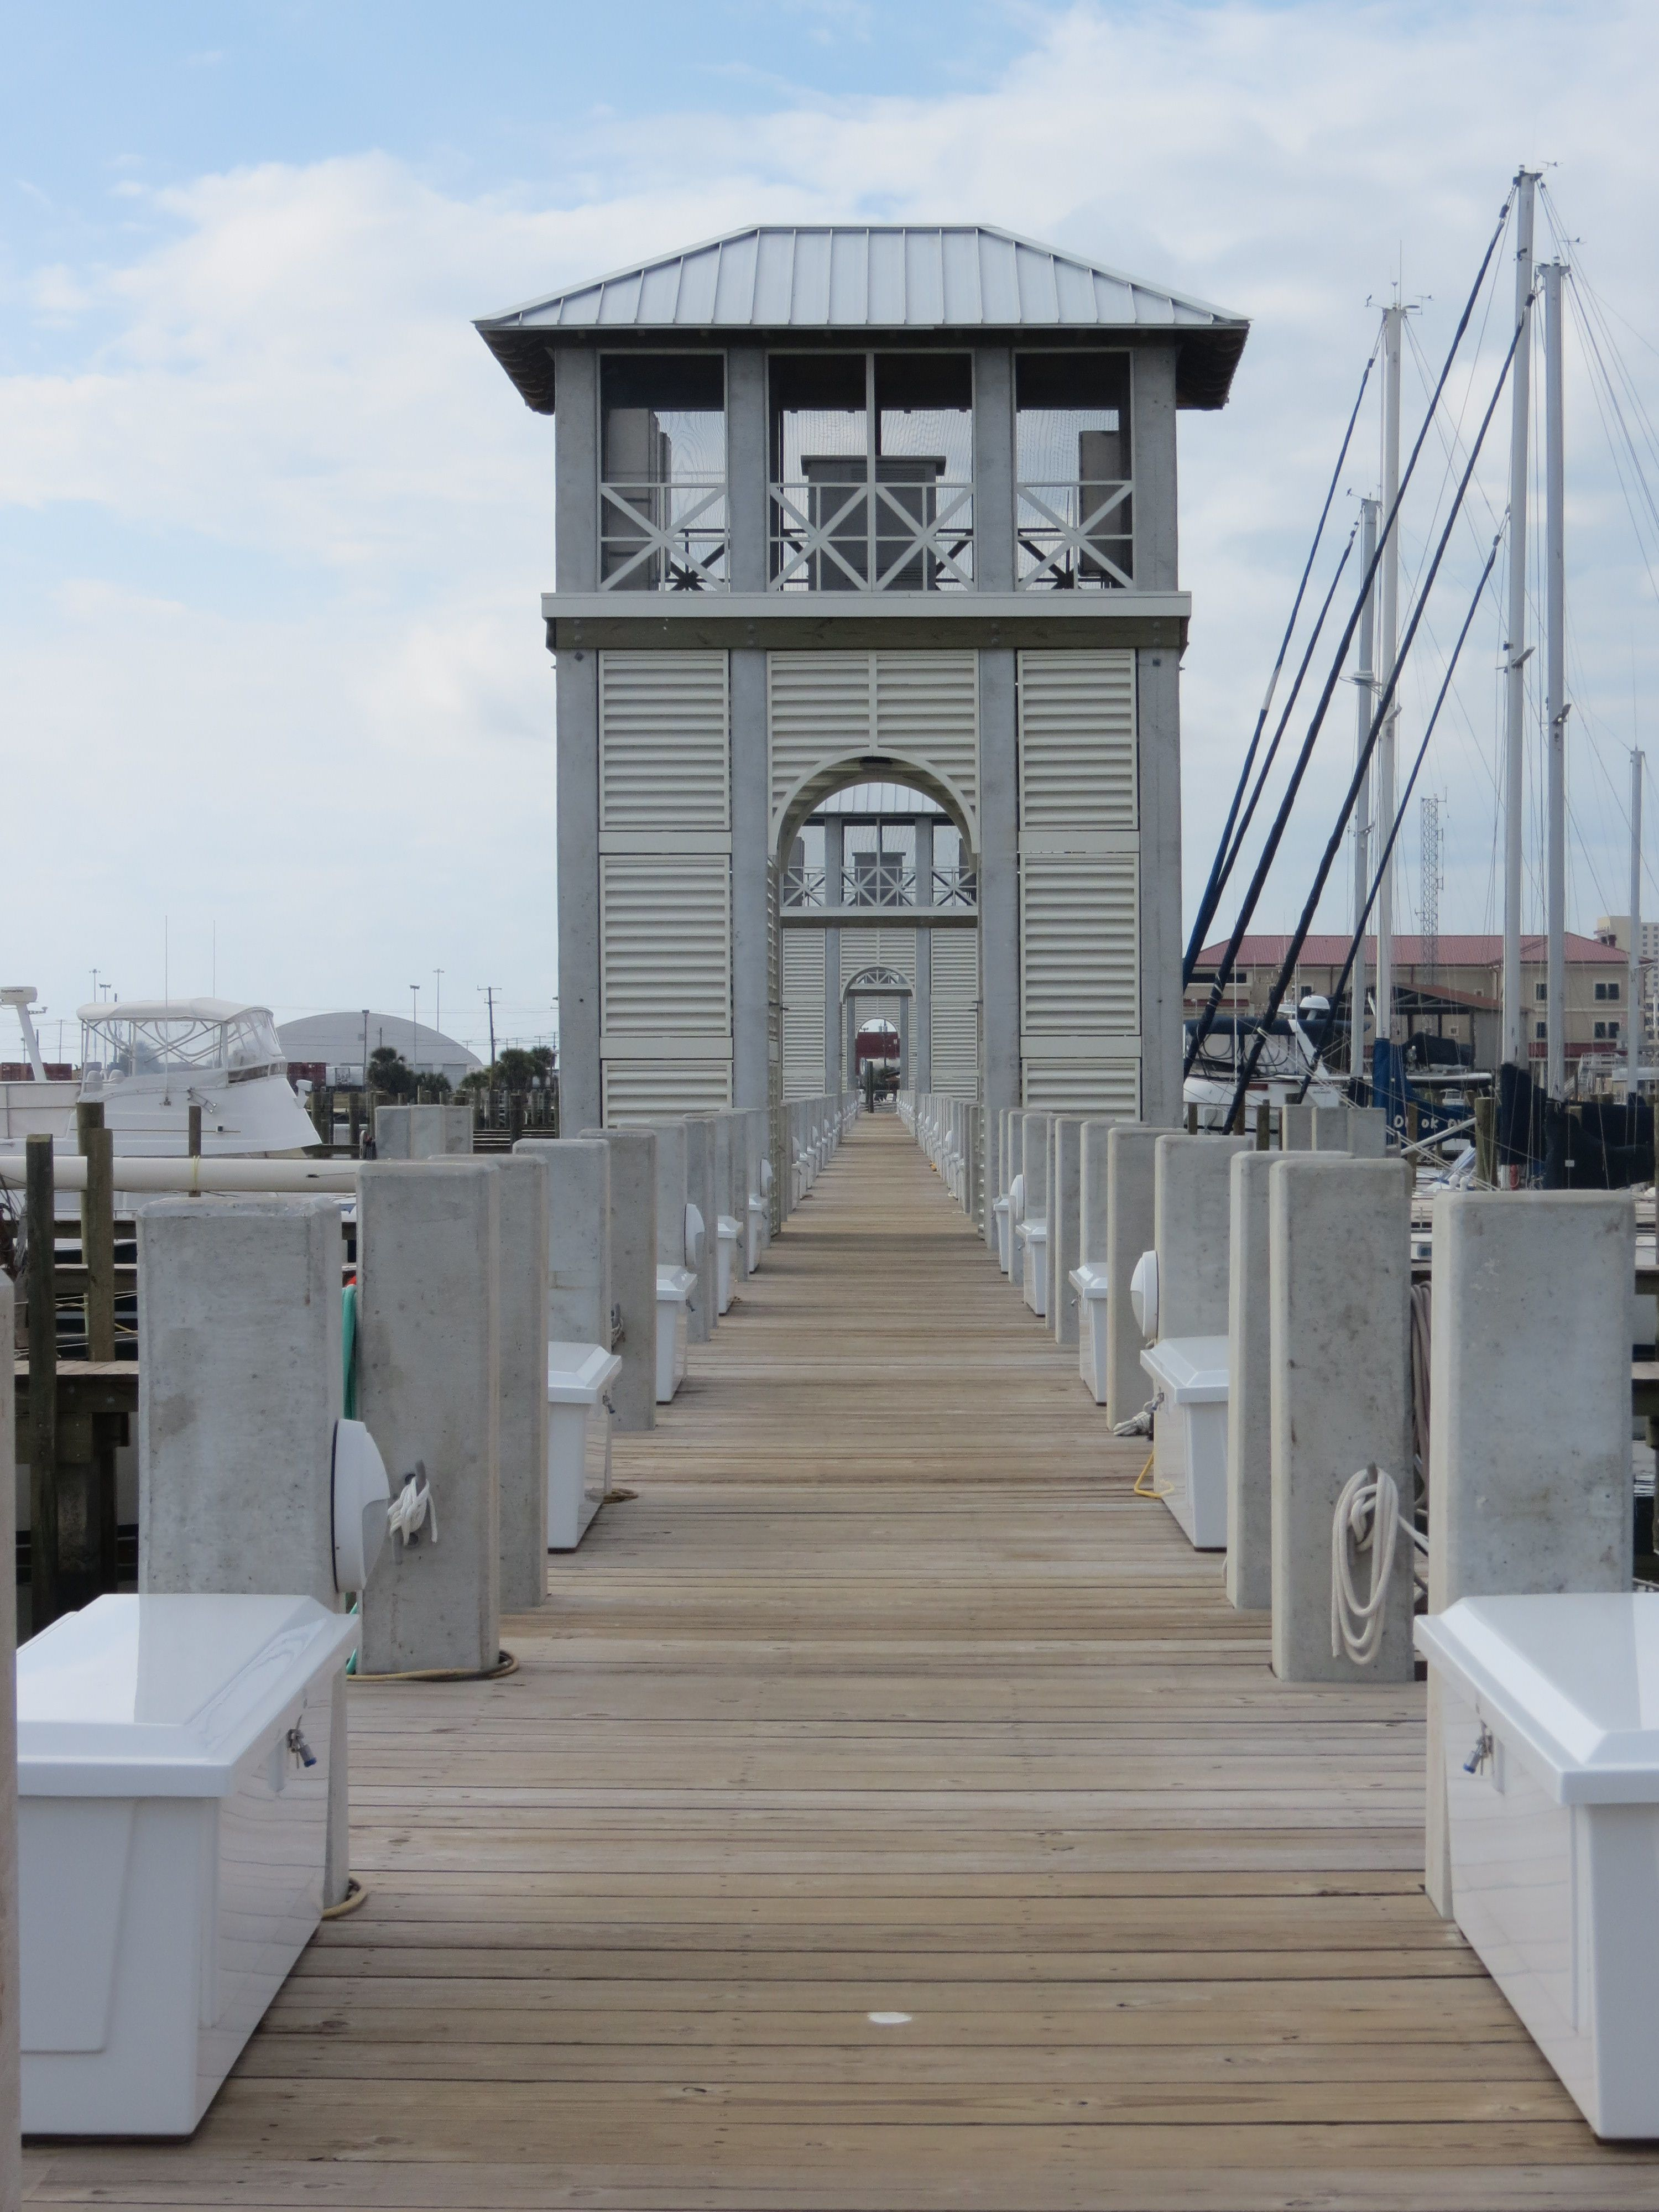 Gulfport Mississippi Harbor I Remember This Place So Well